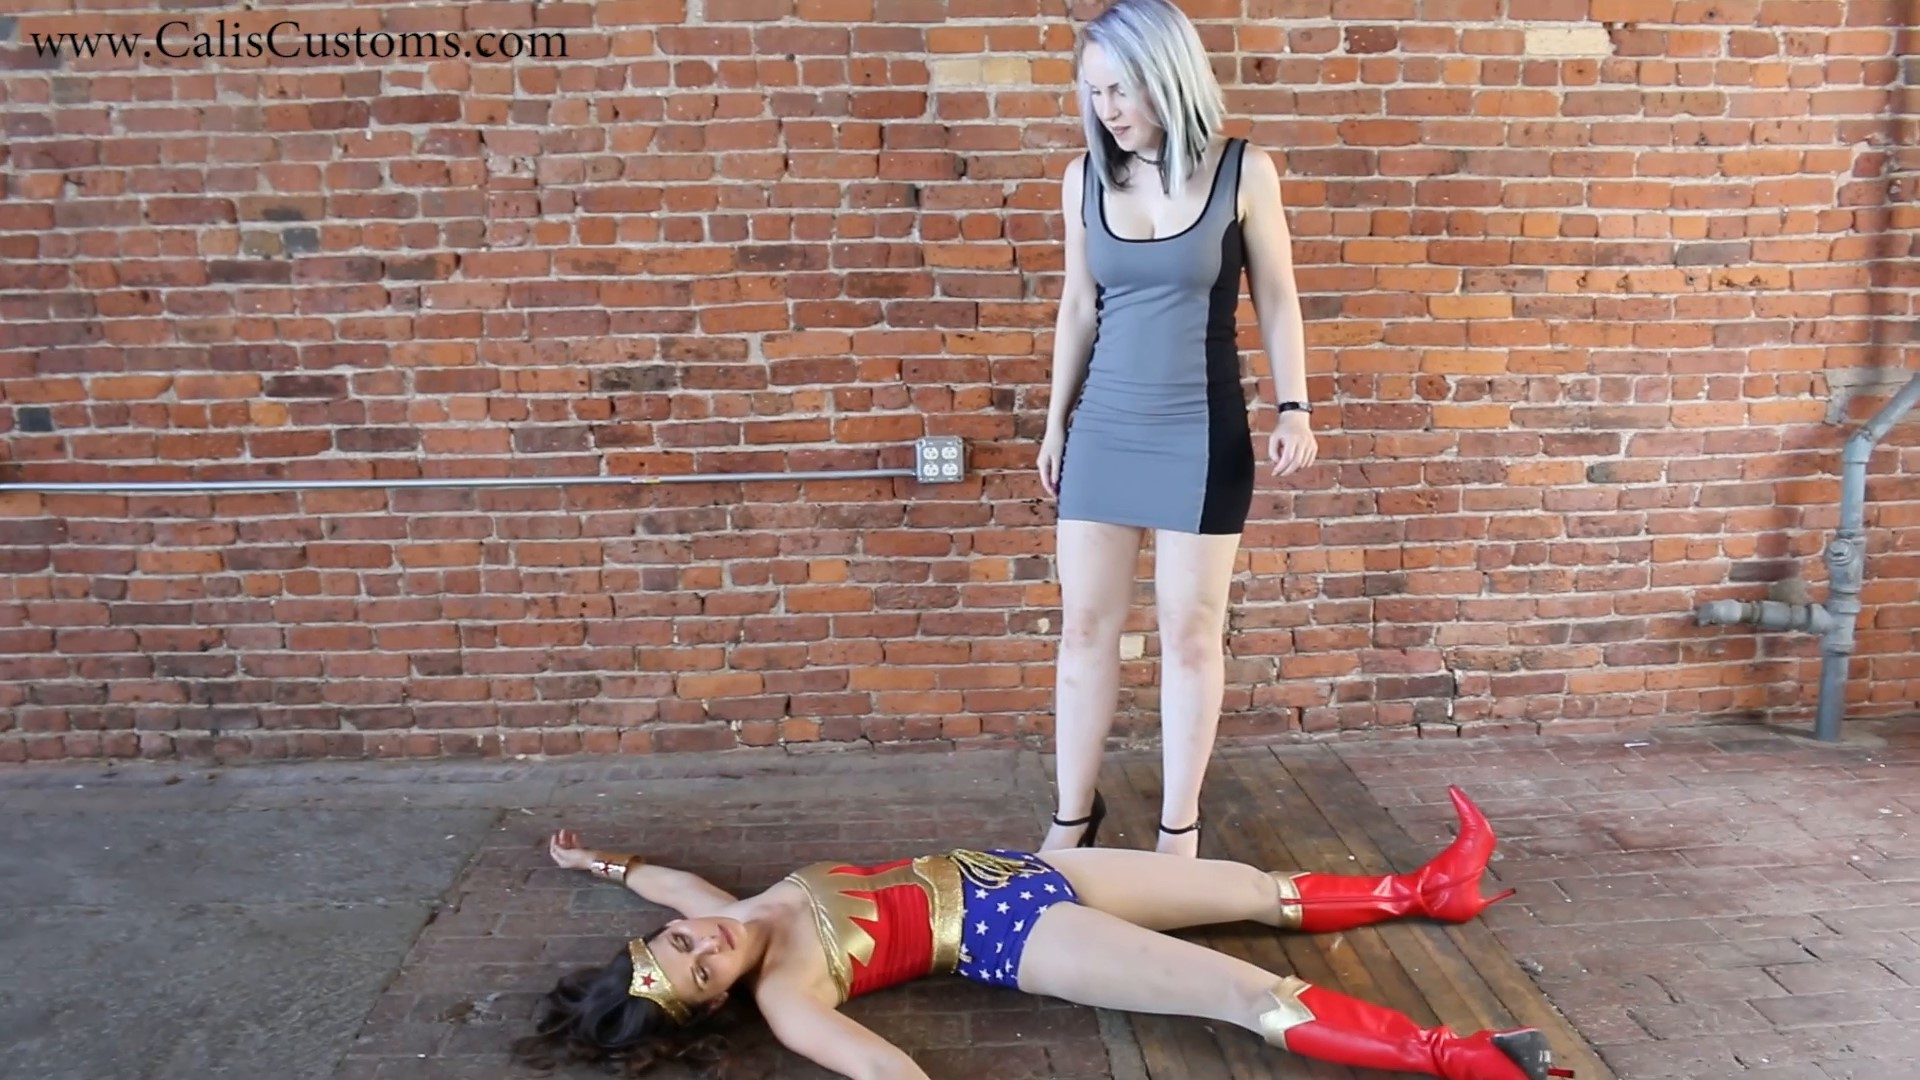 CALI The Wonder Woman KO Trap (24)